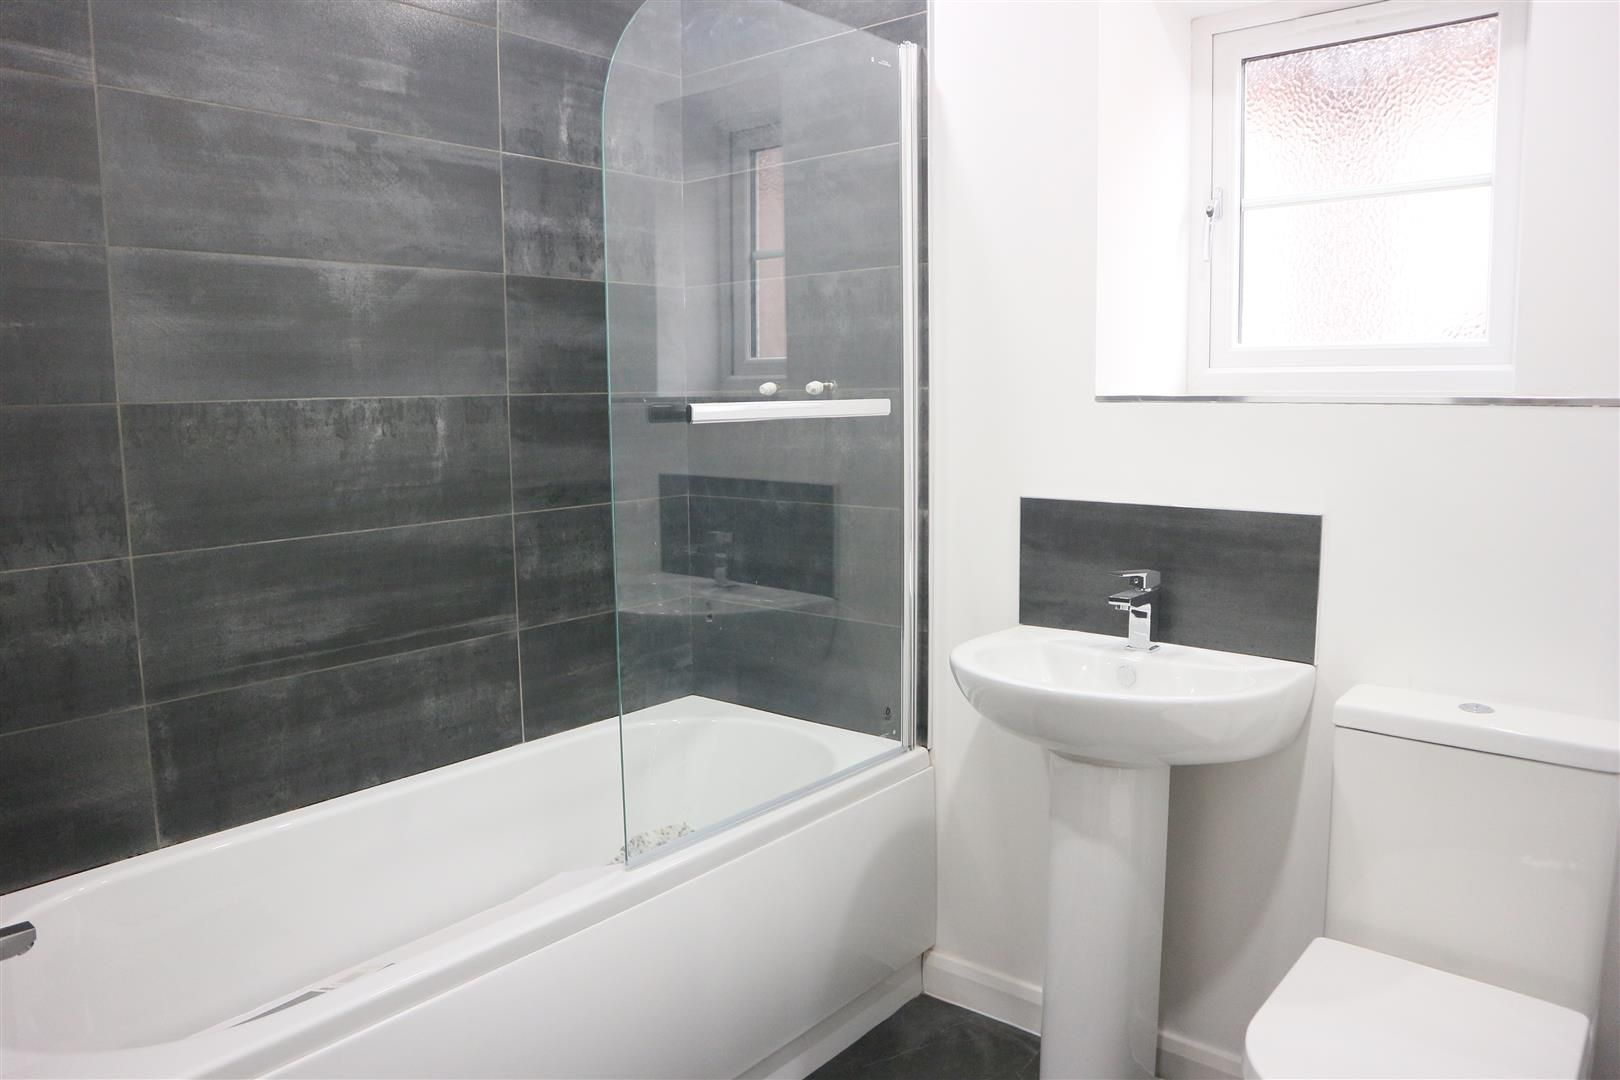 3 bed semi-detached for sale in Netherton  - Property Image 6